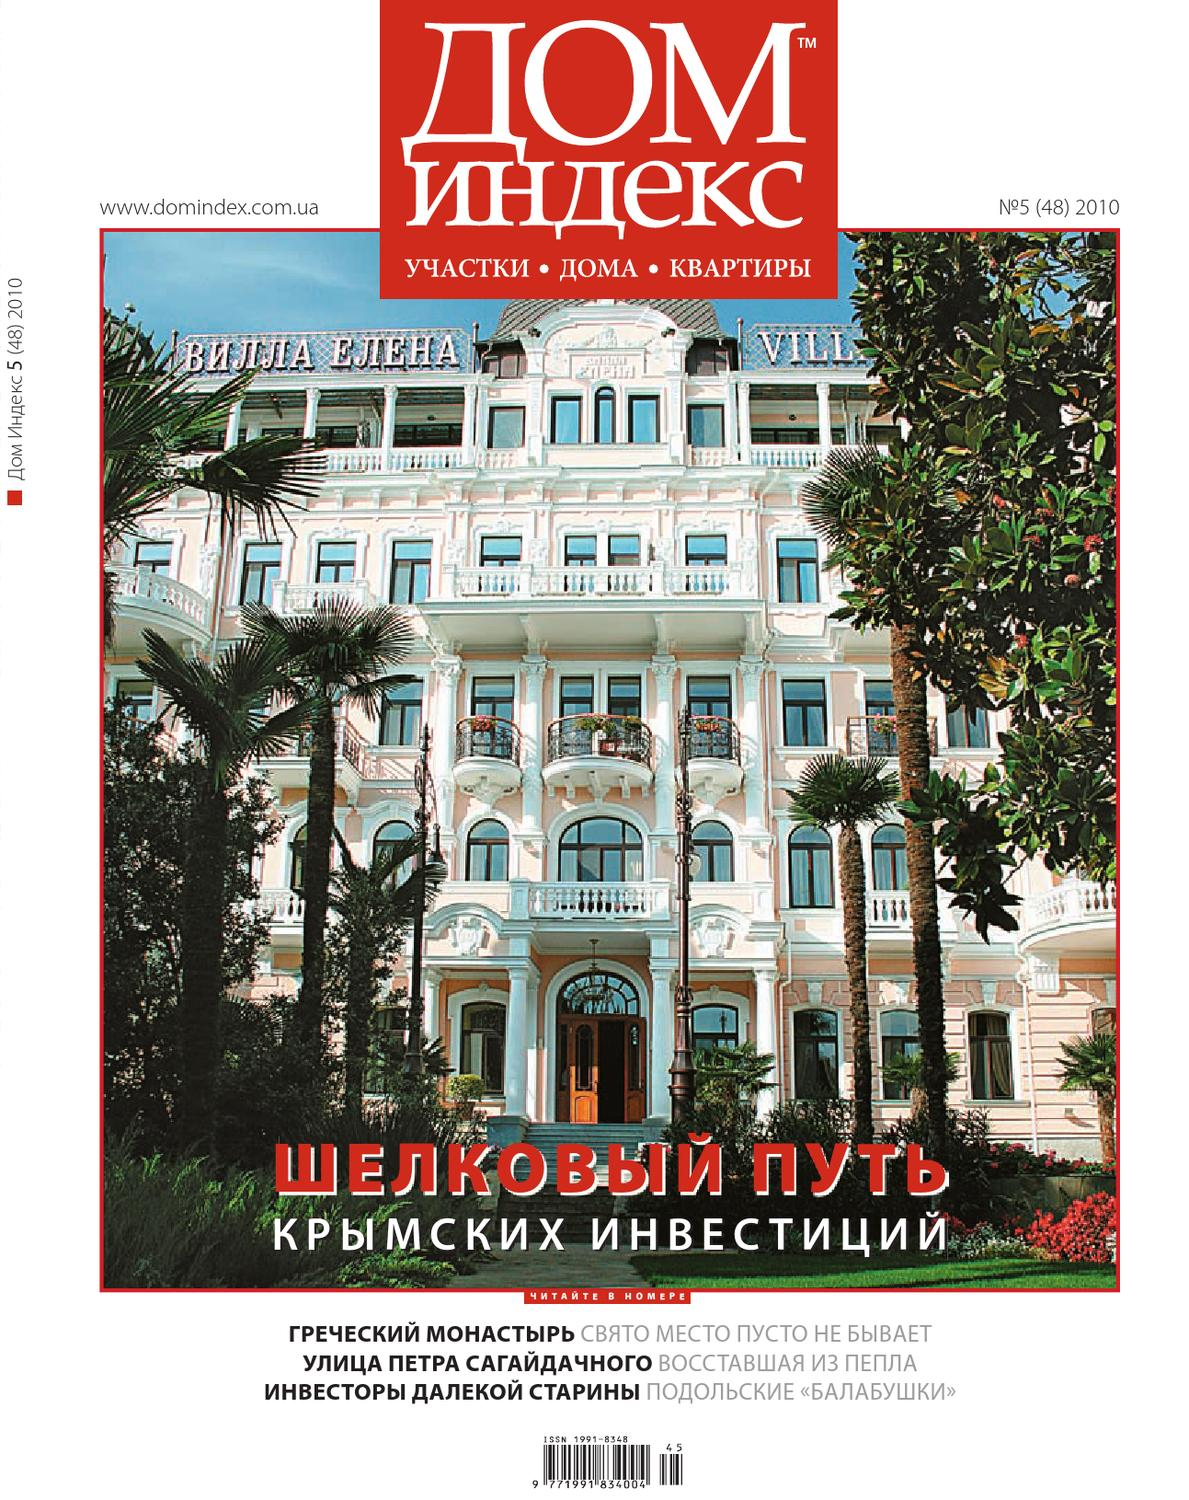 Alimova Balka - a place for a paradise holiday